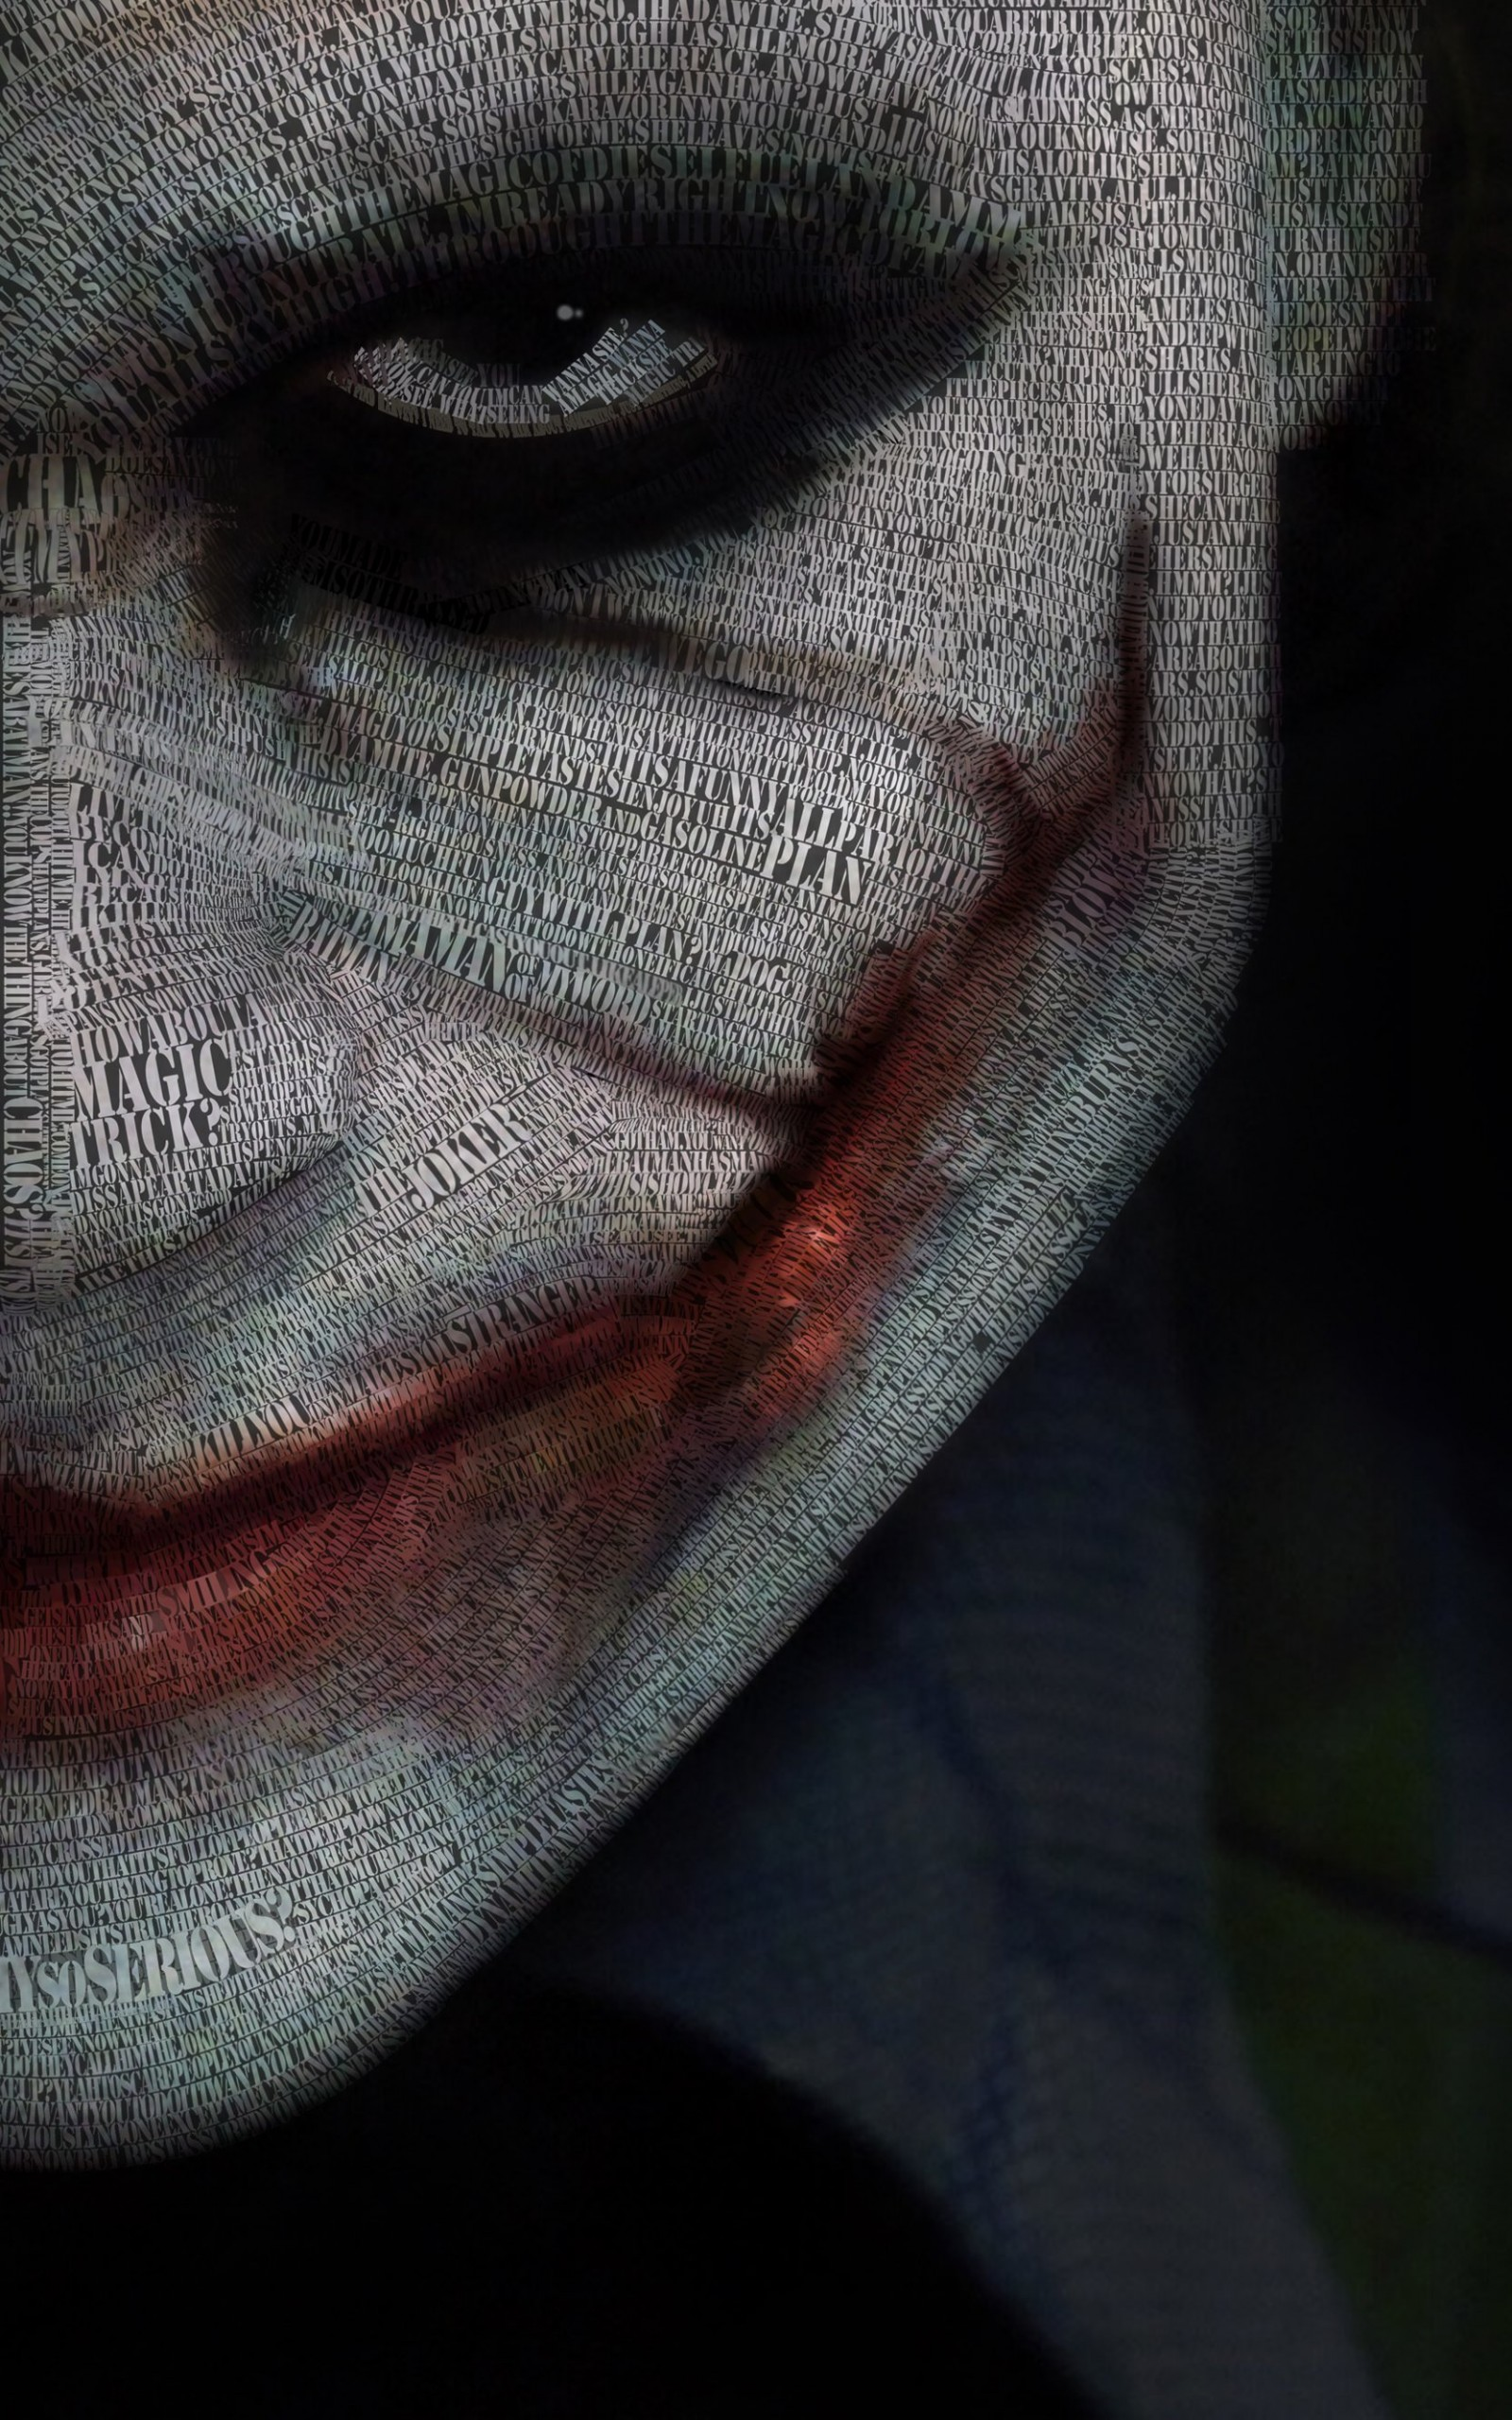 The Joker Typeface Portrait Wallpaper for Amazon Kindle Fire HDX 8.9